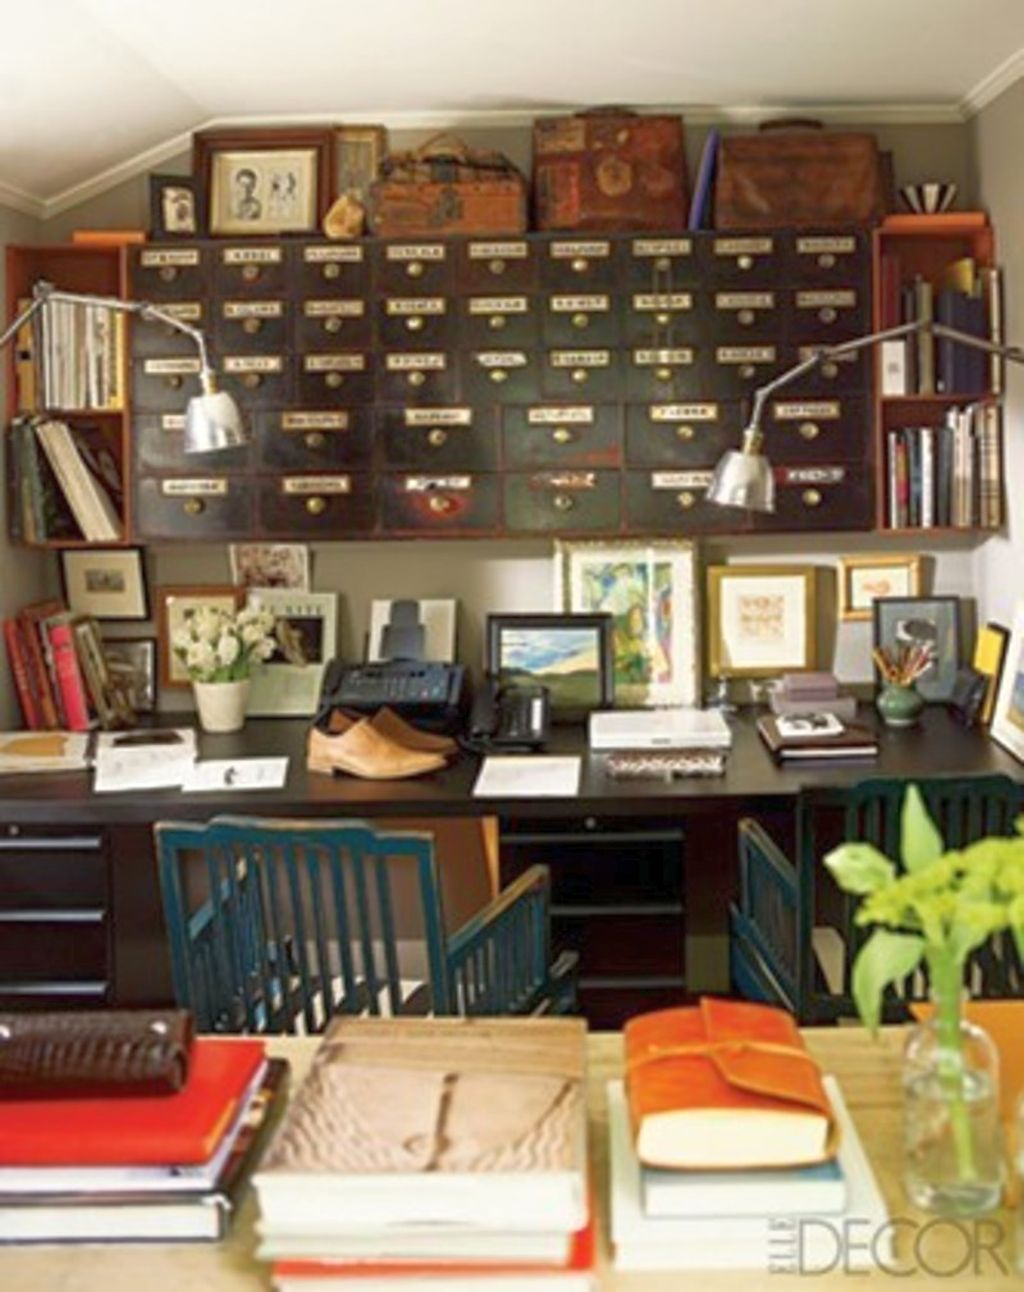 20 inspiring home office design ideas for small spaces - Home office design ideas pictures ...